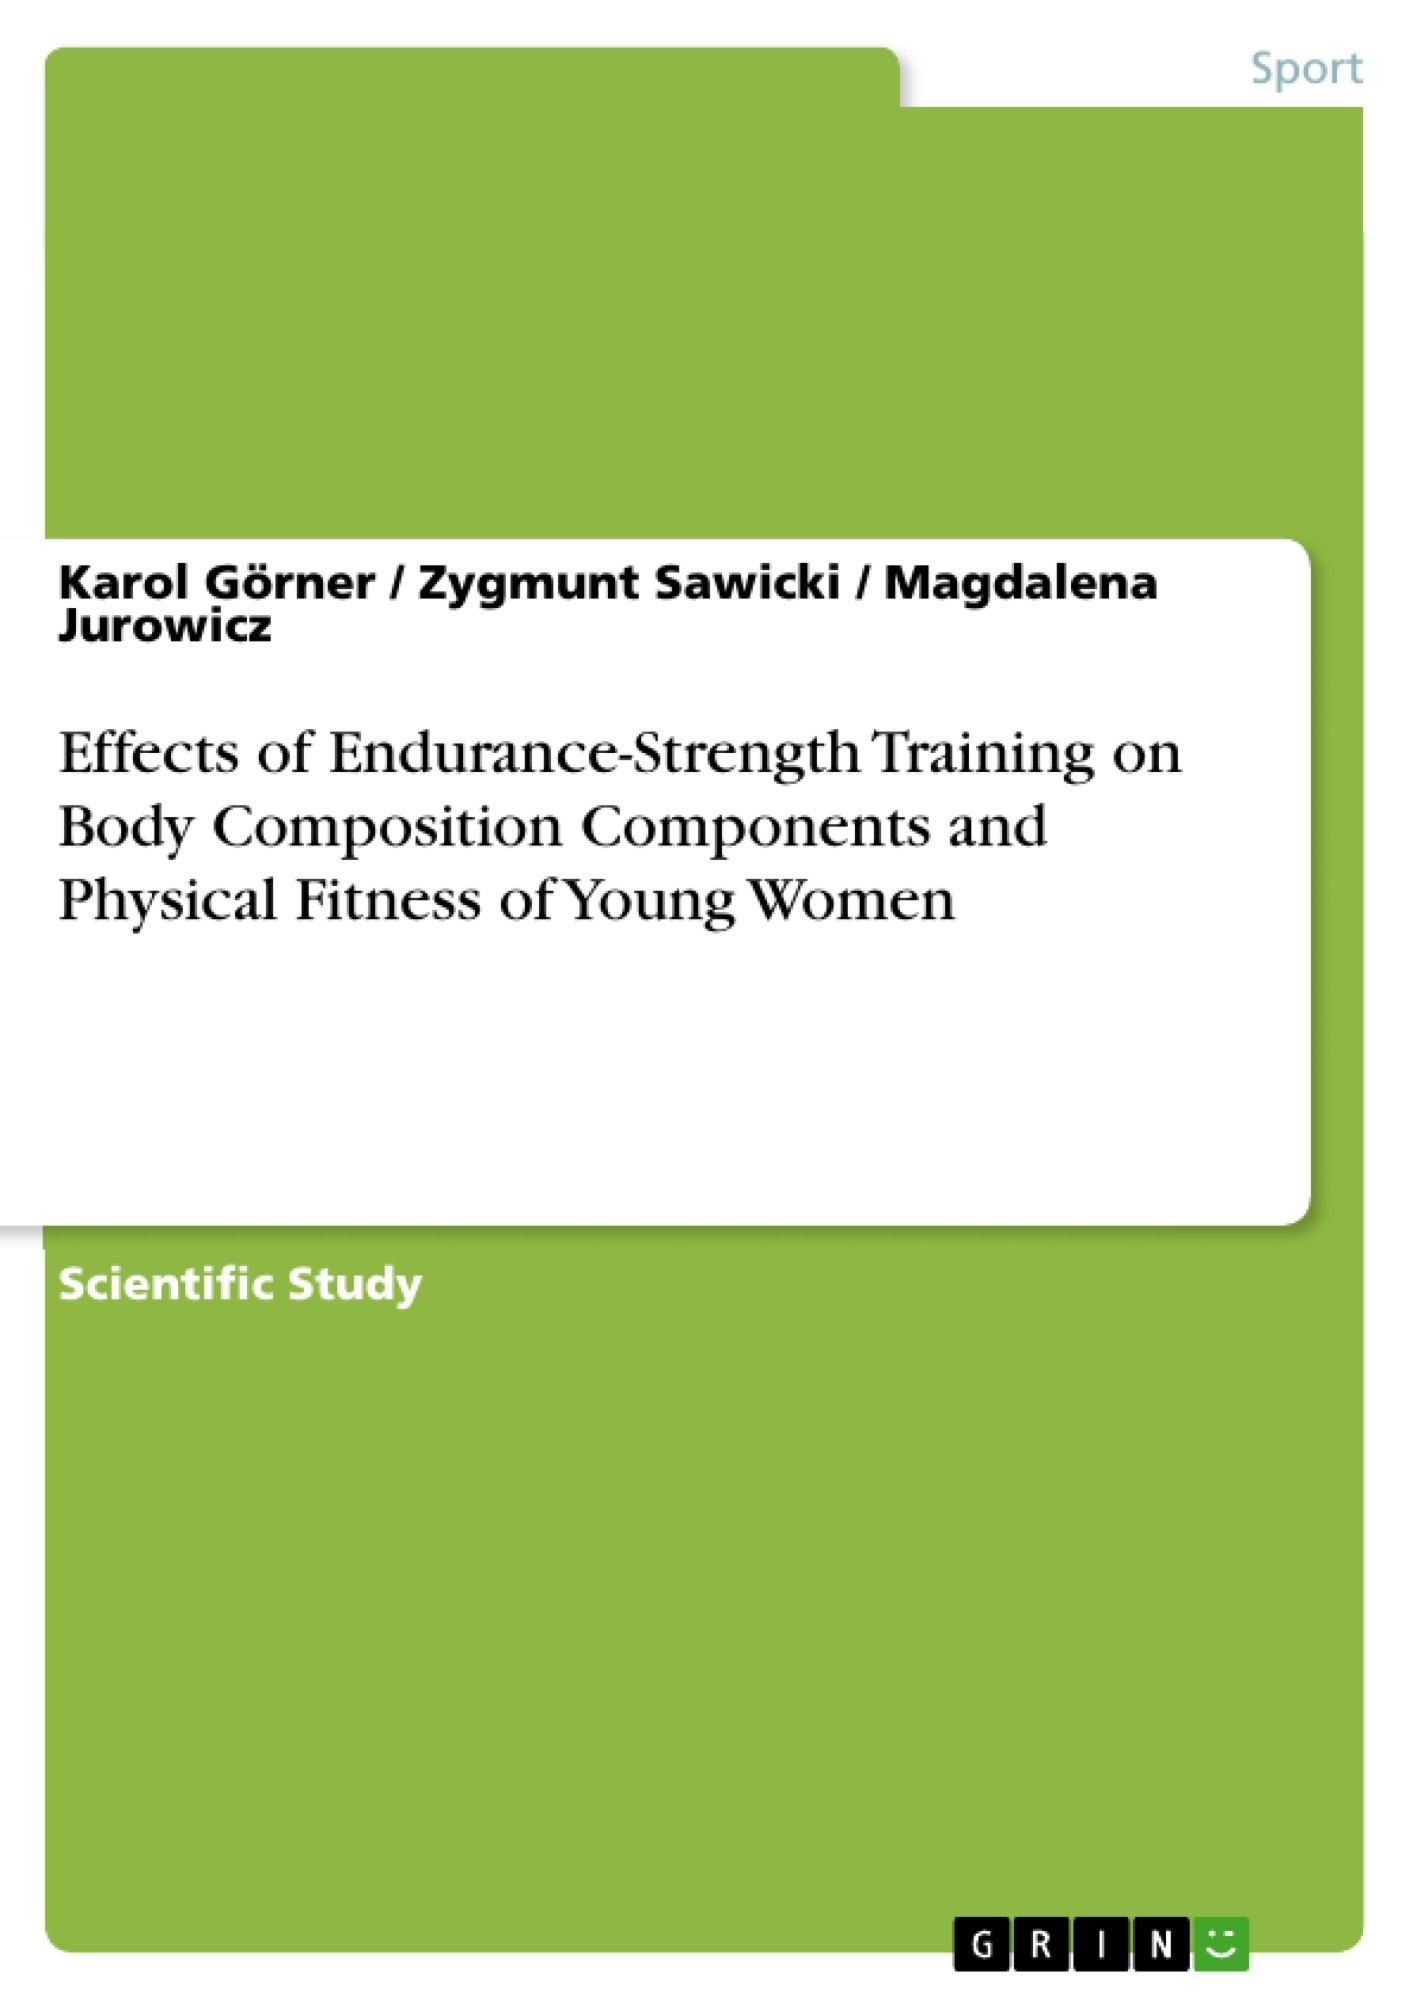 Title: Effects of Endurance-Strength Training on Body Composition Components and Physical Fitness of Young Women